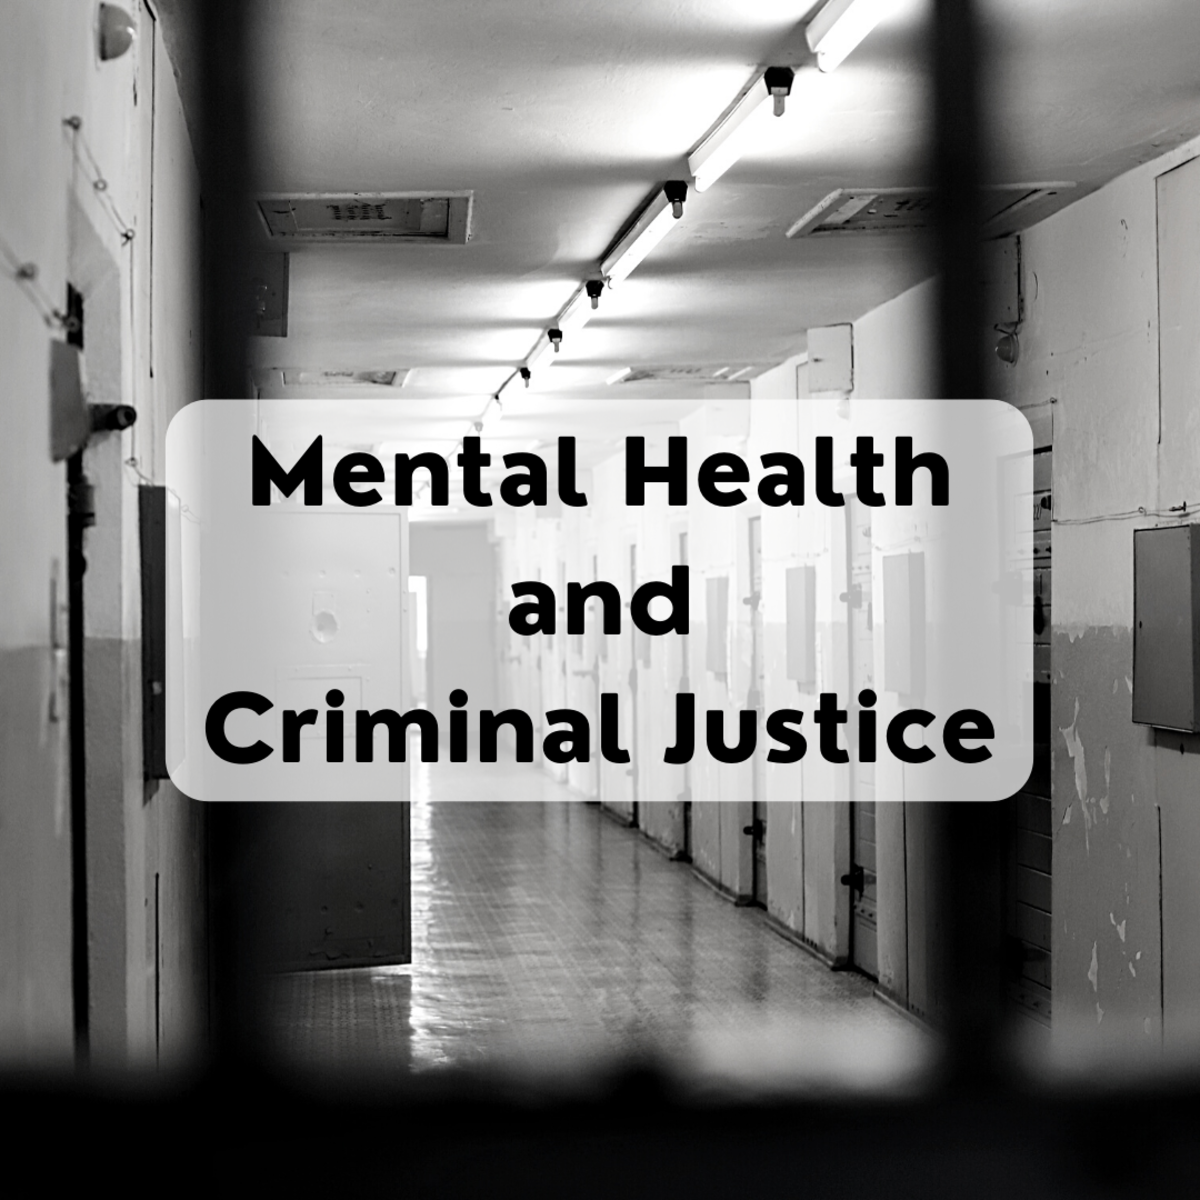 This article considers how budget cuts to mental health programs have led many consumers to wind up in the criminal justice system.